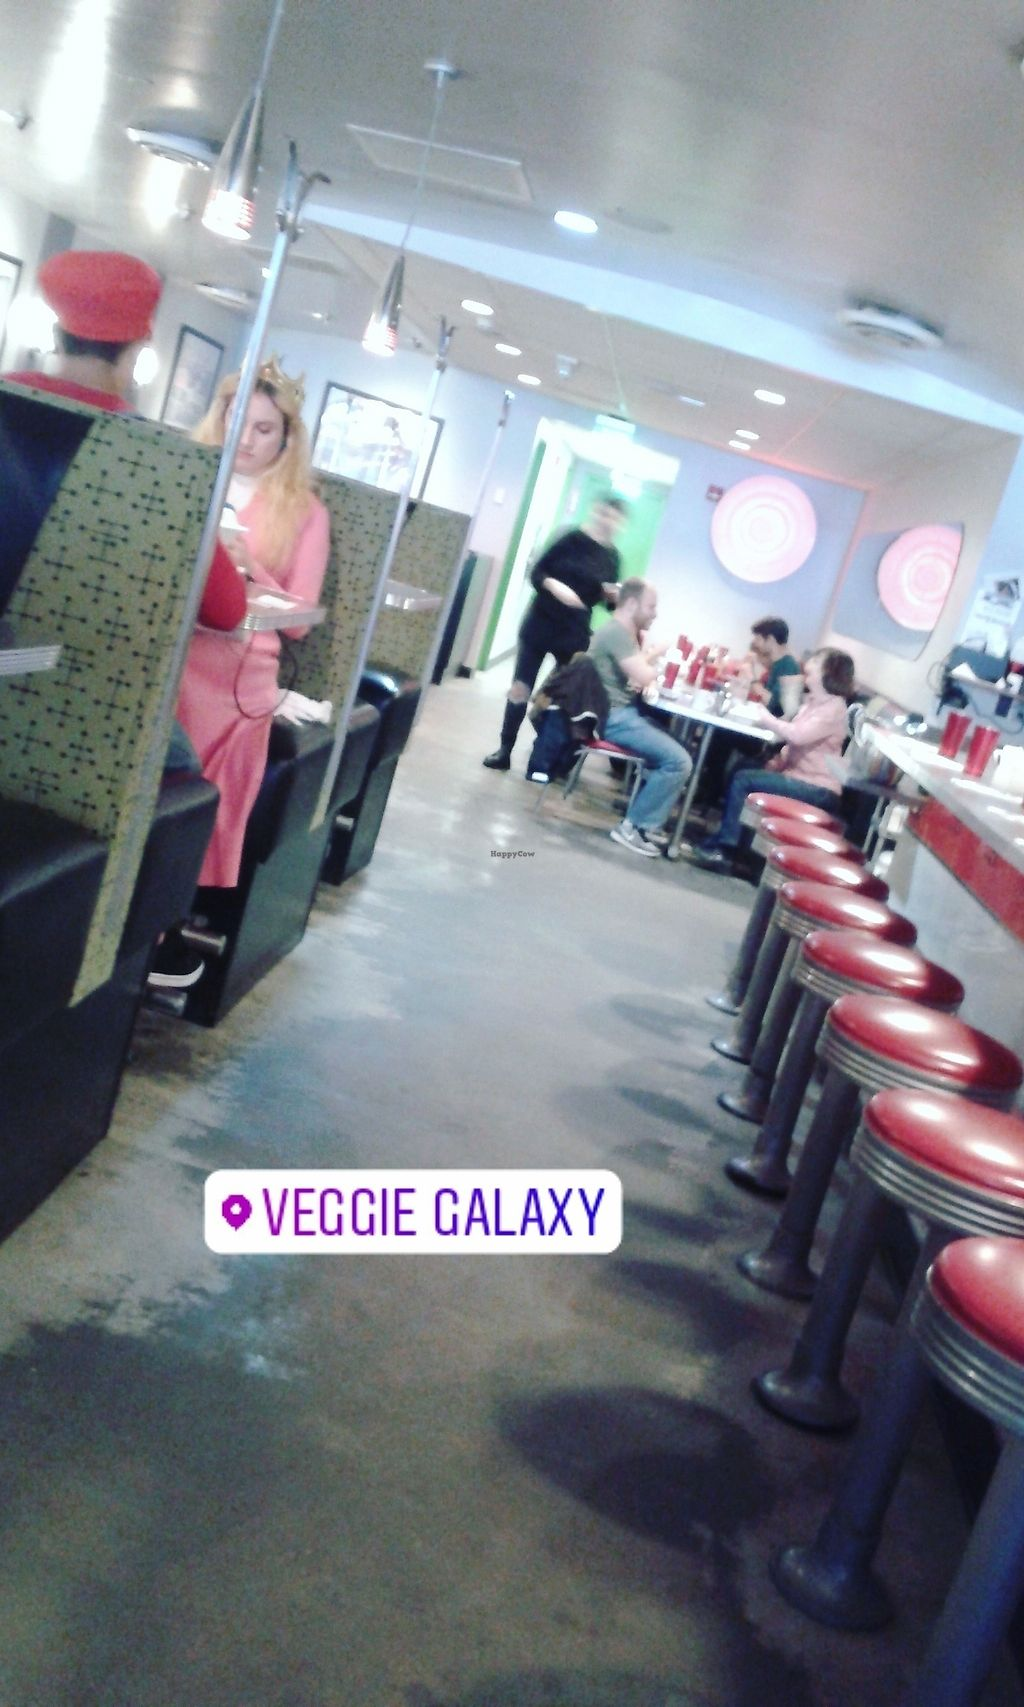 """Photo of Veggie Galaxy  by <a href=""""/members/profile/Coralin"""">Coralin</a> <br/>The restaurant <br/> November 9, 2017  - <a href='/contact/abuse/image/27722/323579'>Report</a>"""